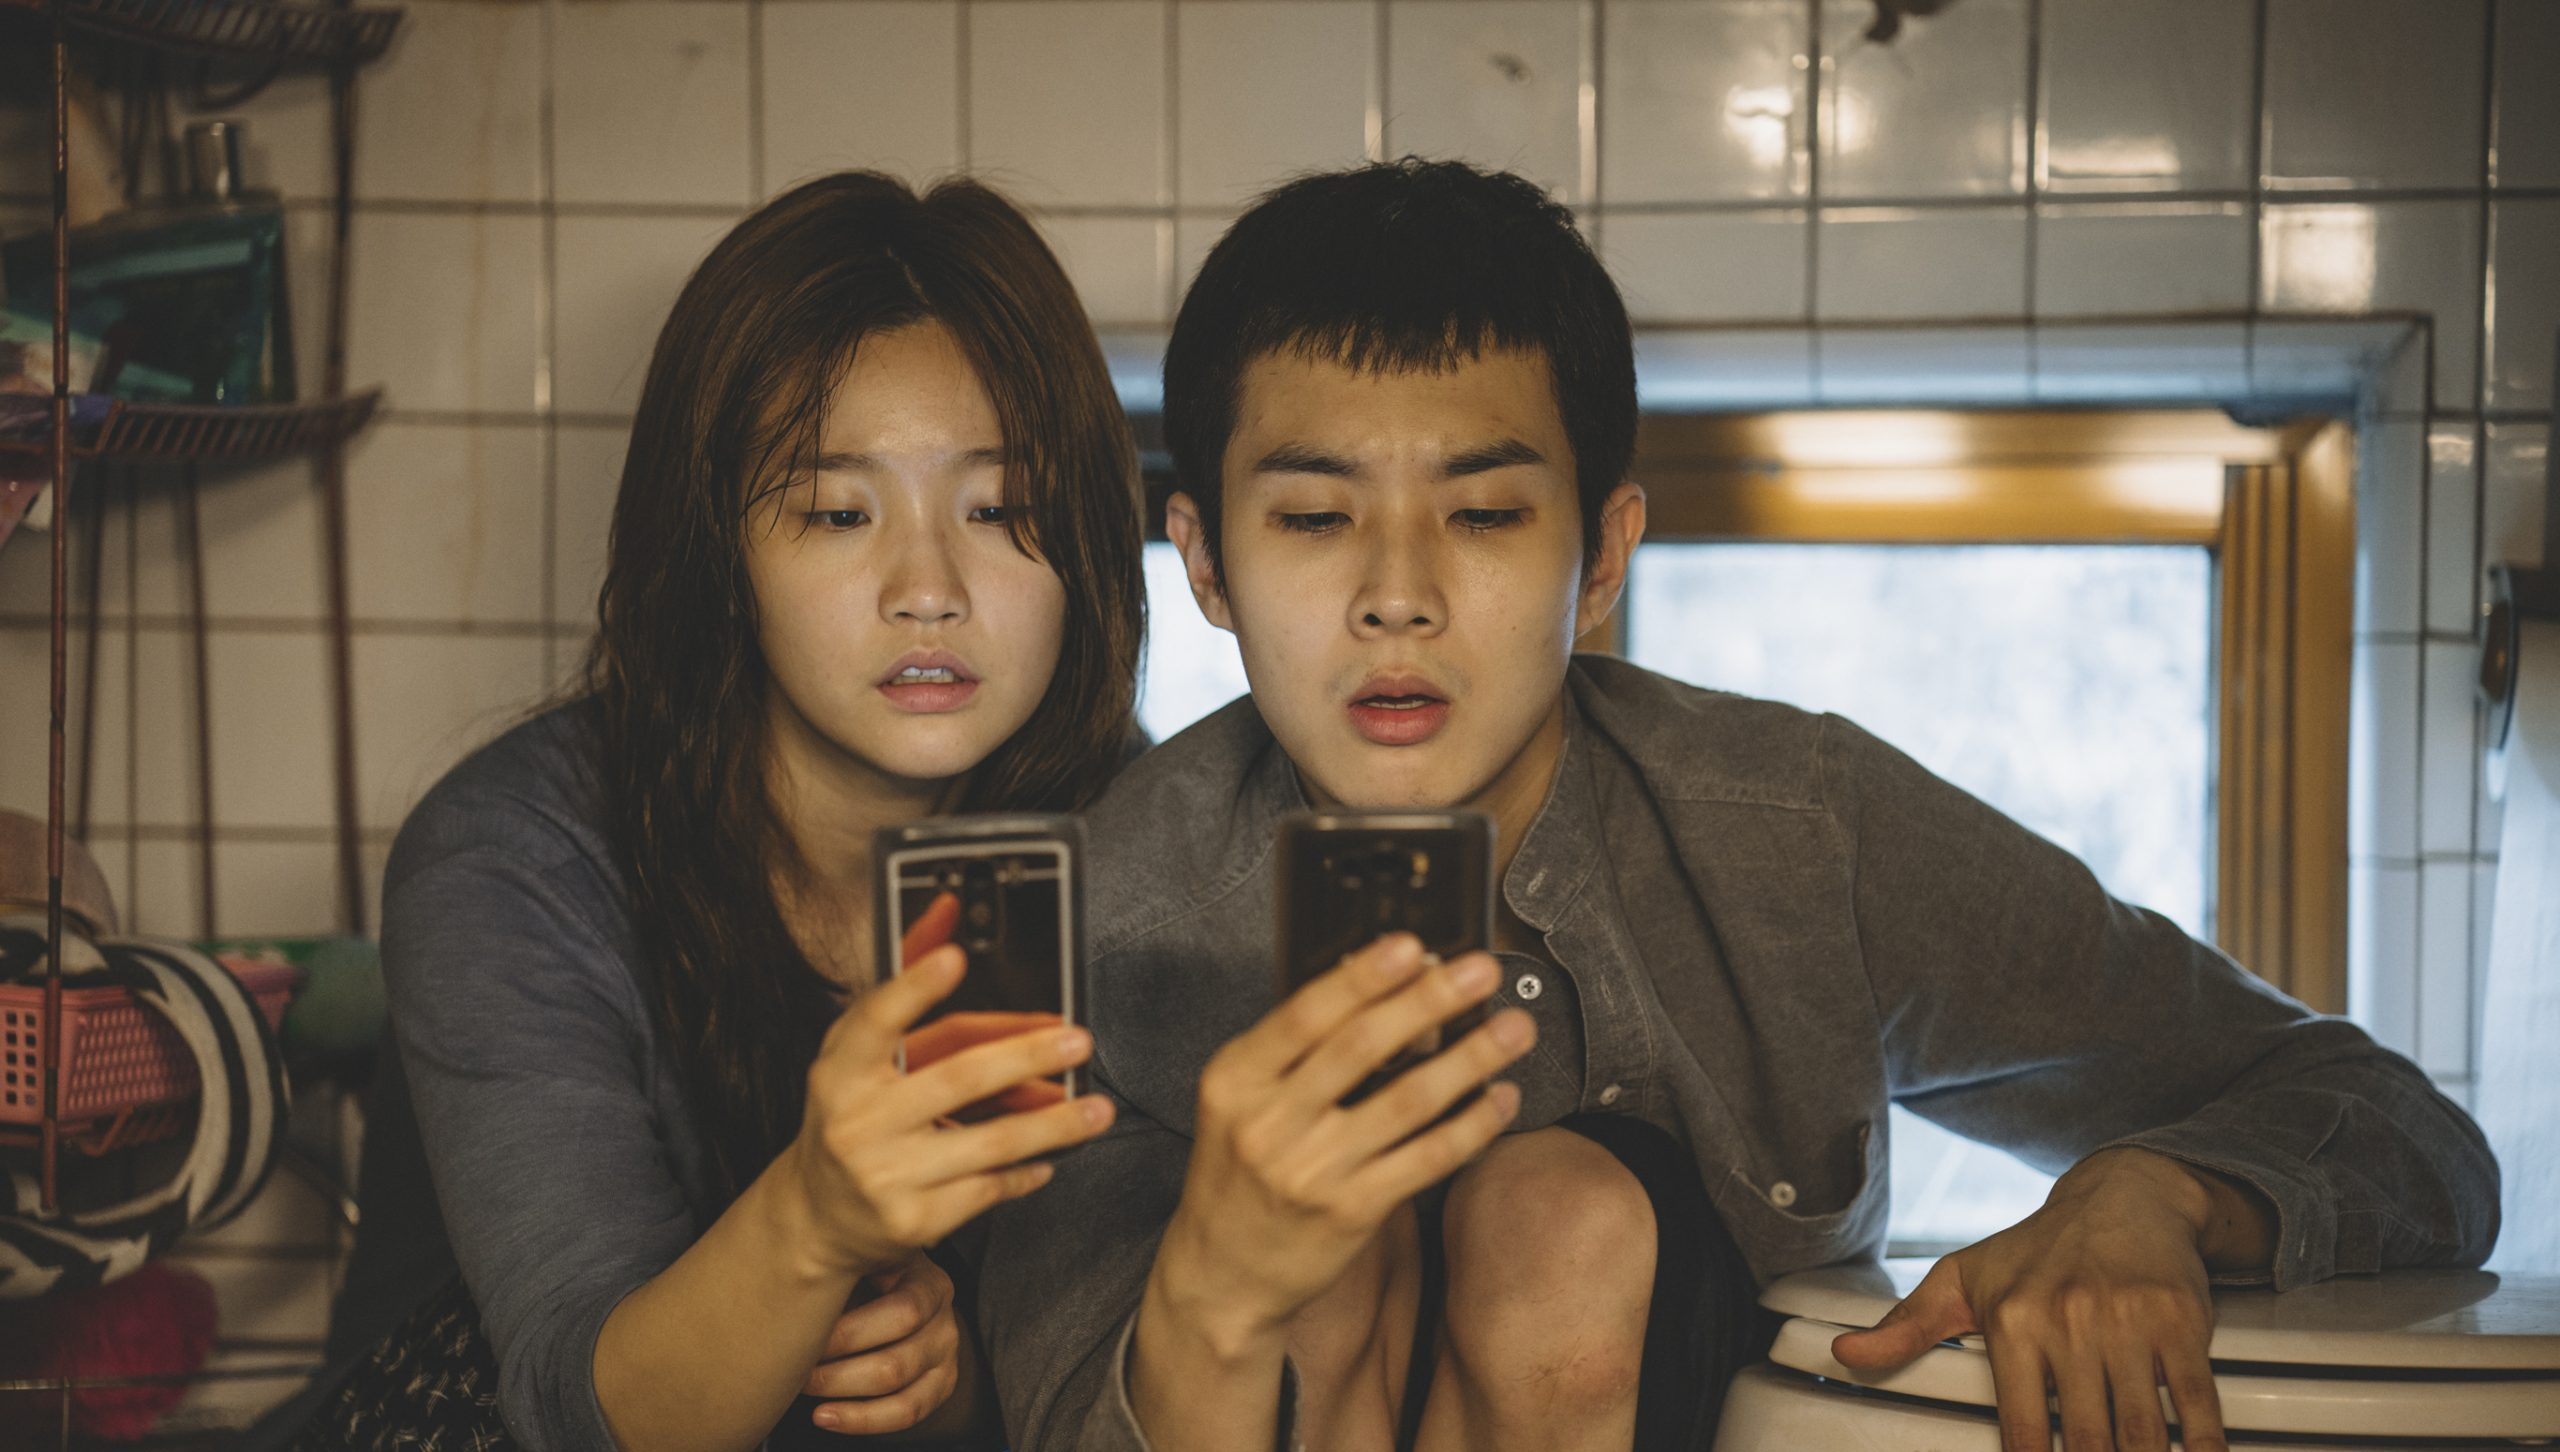 Two protagonists from the film Parasite